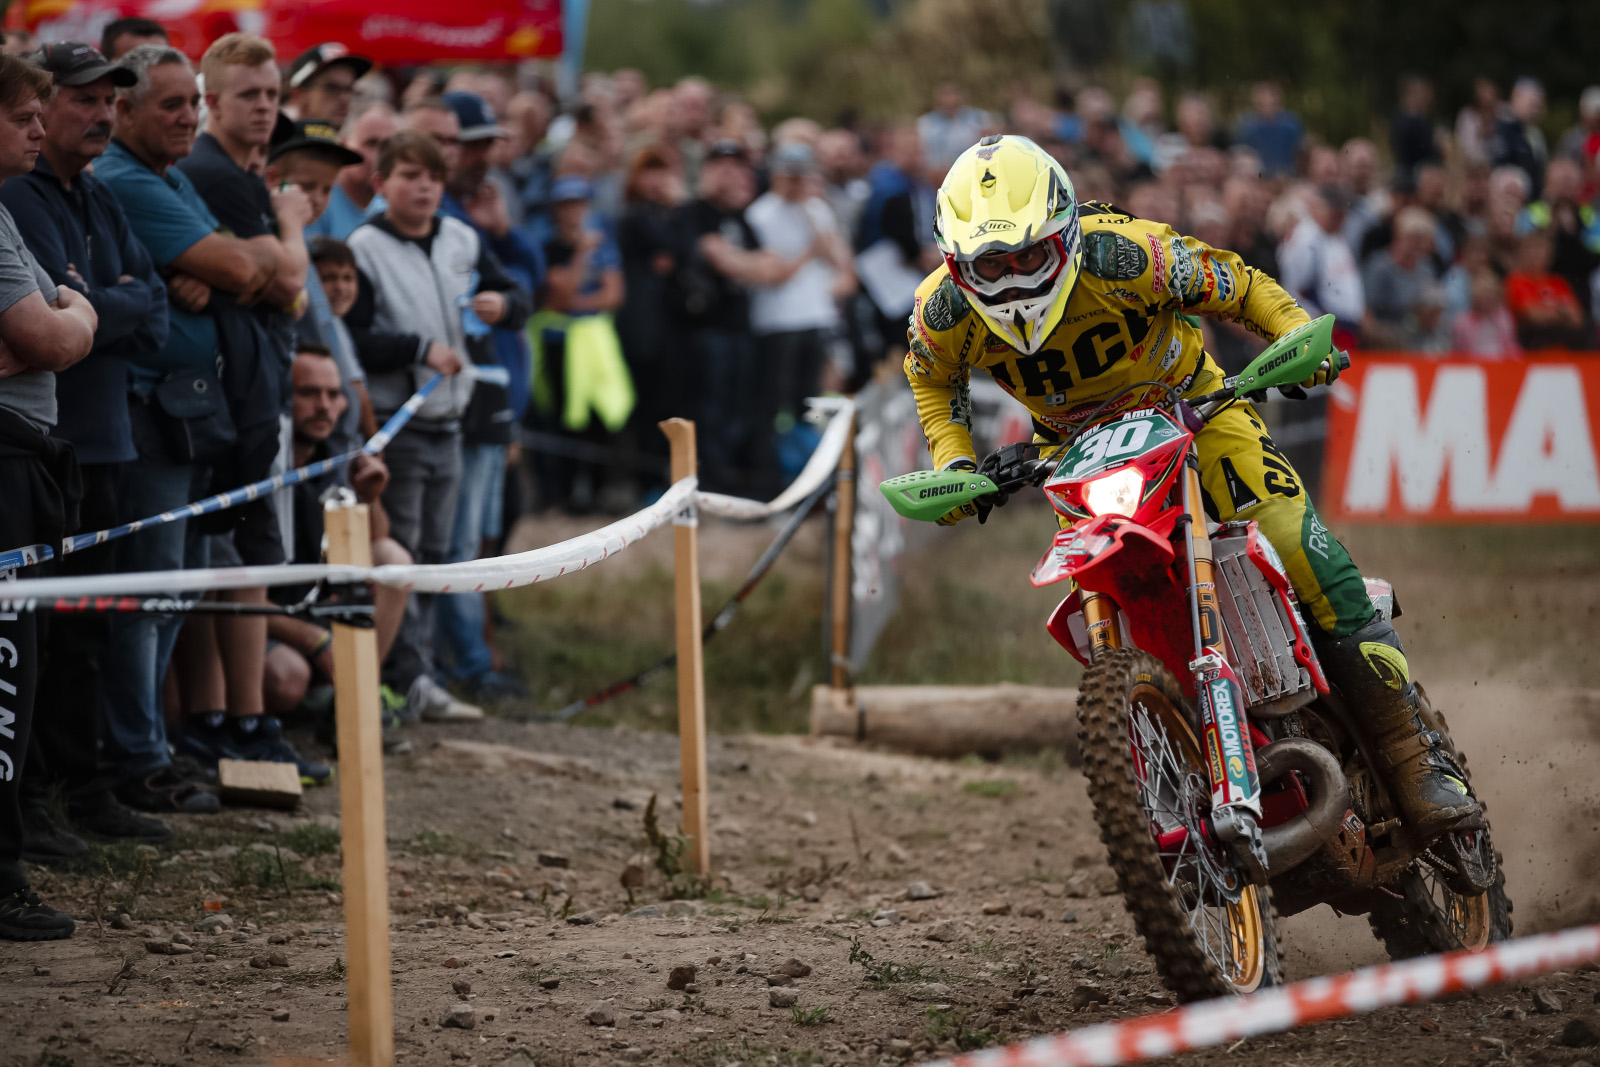 Results feed: EnduroGP Supertest in Czech Republic – Freeman takes first blood